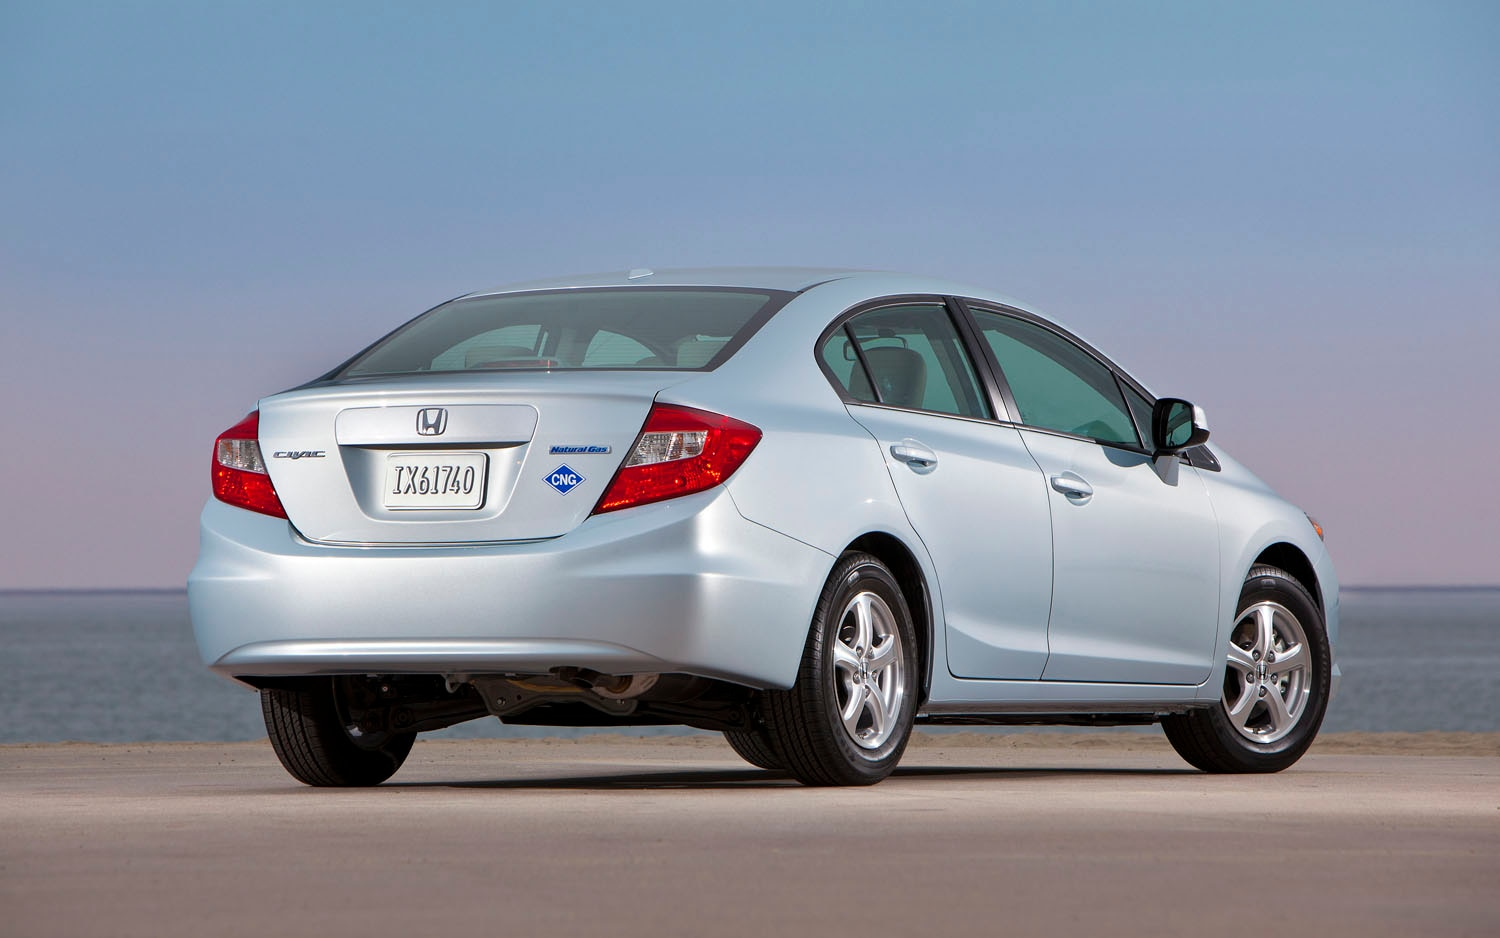 2012 honda civic natural gas goes on sale for 26 905 for Honda civic natural gas